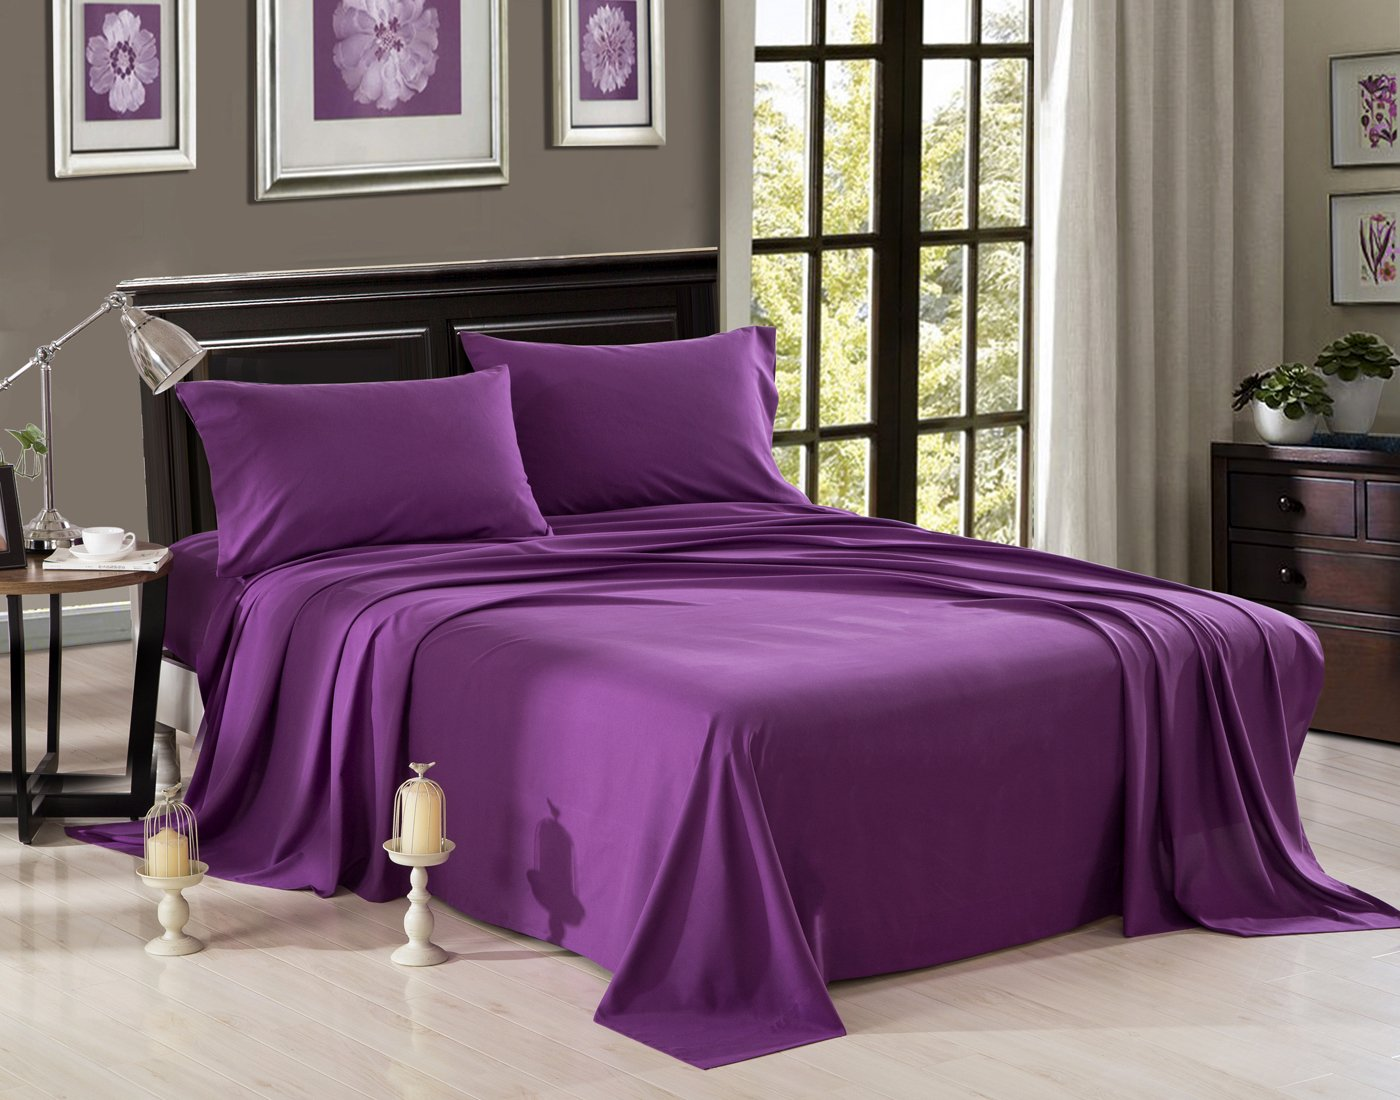 HONEYMOON HOME FASHIONS Brushed Microfiber Queen Bed Sheet Set, Purple - 100% polyester microfiber Includes: (1) Flat Sheet 90 x 102 inch; (1) Fitted Sheet 60 W x 80 L inch; (2) Pillowcases 20 x 30 inch; pillow insert sold separately This set is made of premium polyester fabric which is highly durable and lasts longer than average polyester sheet sets. A great gift for family and friends. Makes the perfect gift for any occasion - sheet-sets, bedroom-sheets-comforters, bedroom - 71uSMs9ETeL -